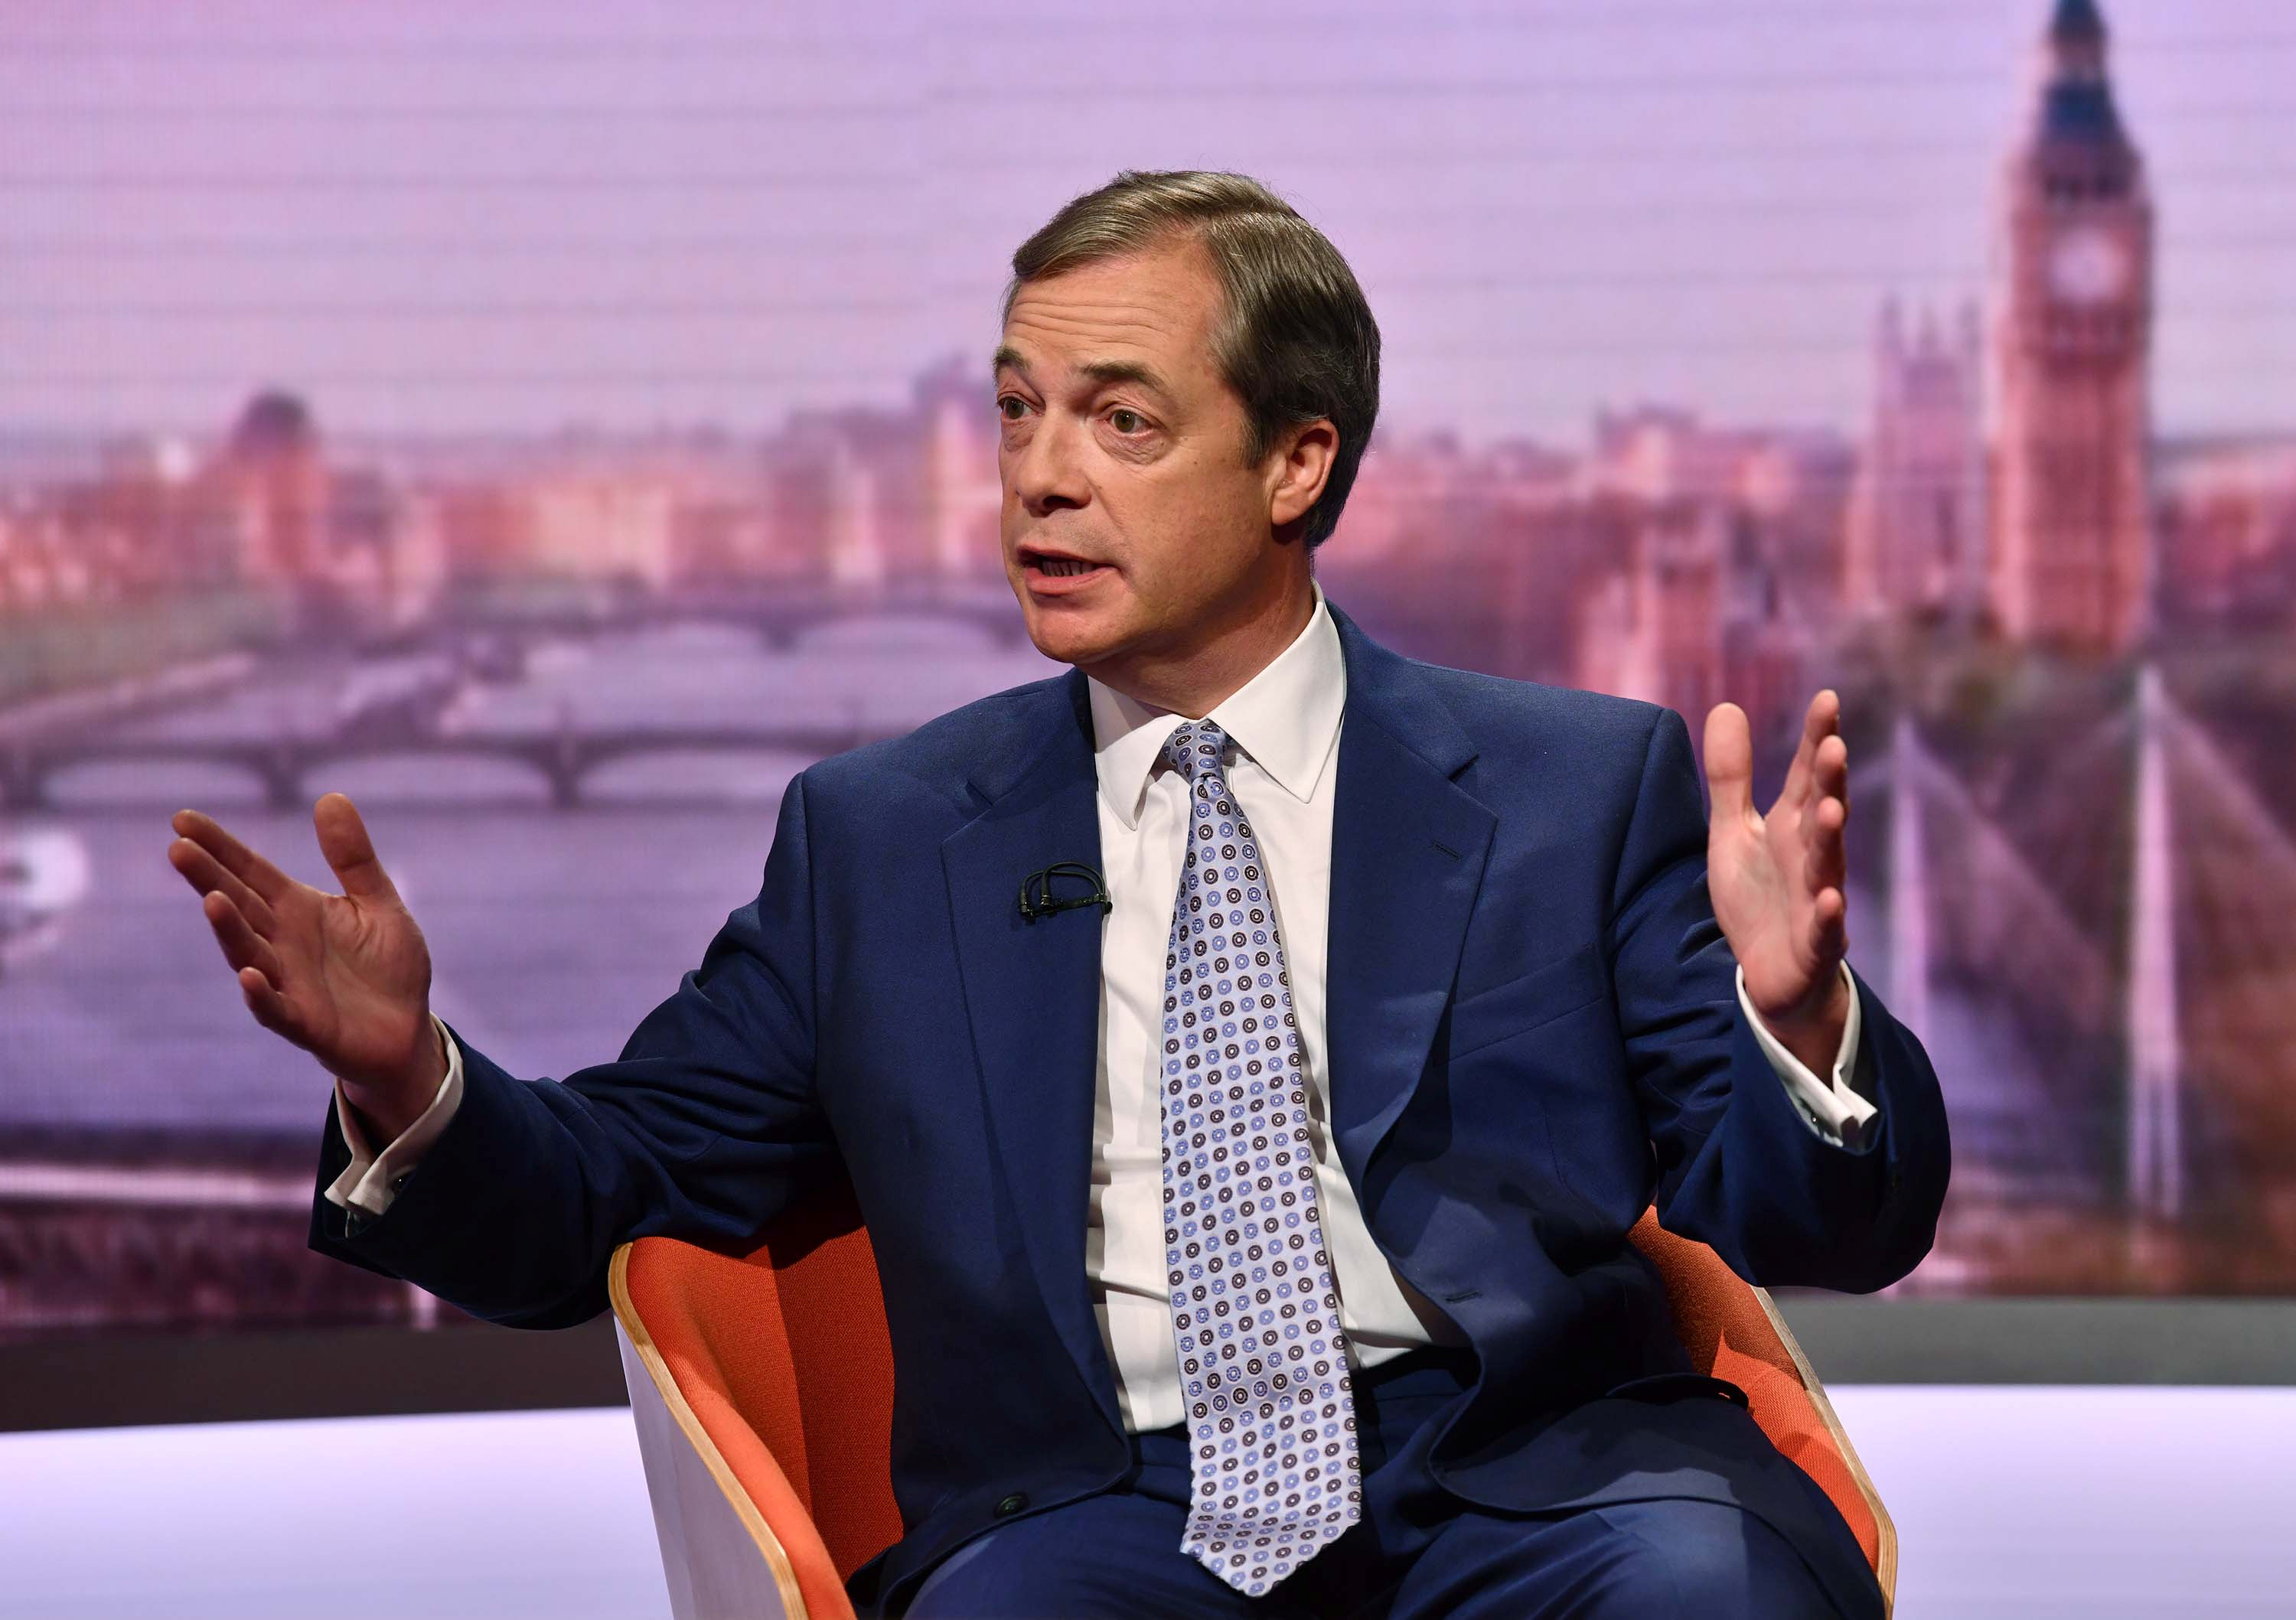 Brexit Party leader Nigel Farage appears on BBC TV's The Andrew Marr Show in London, Britain, May 12, 2019.